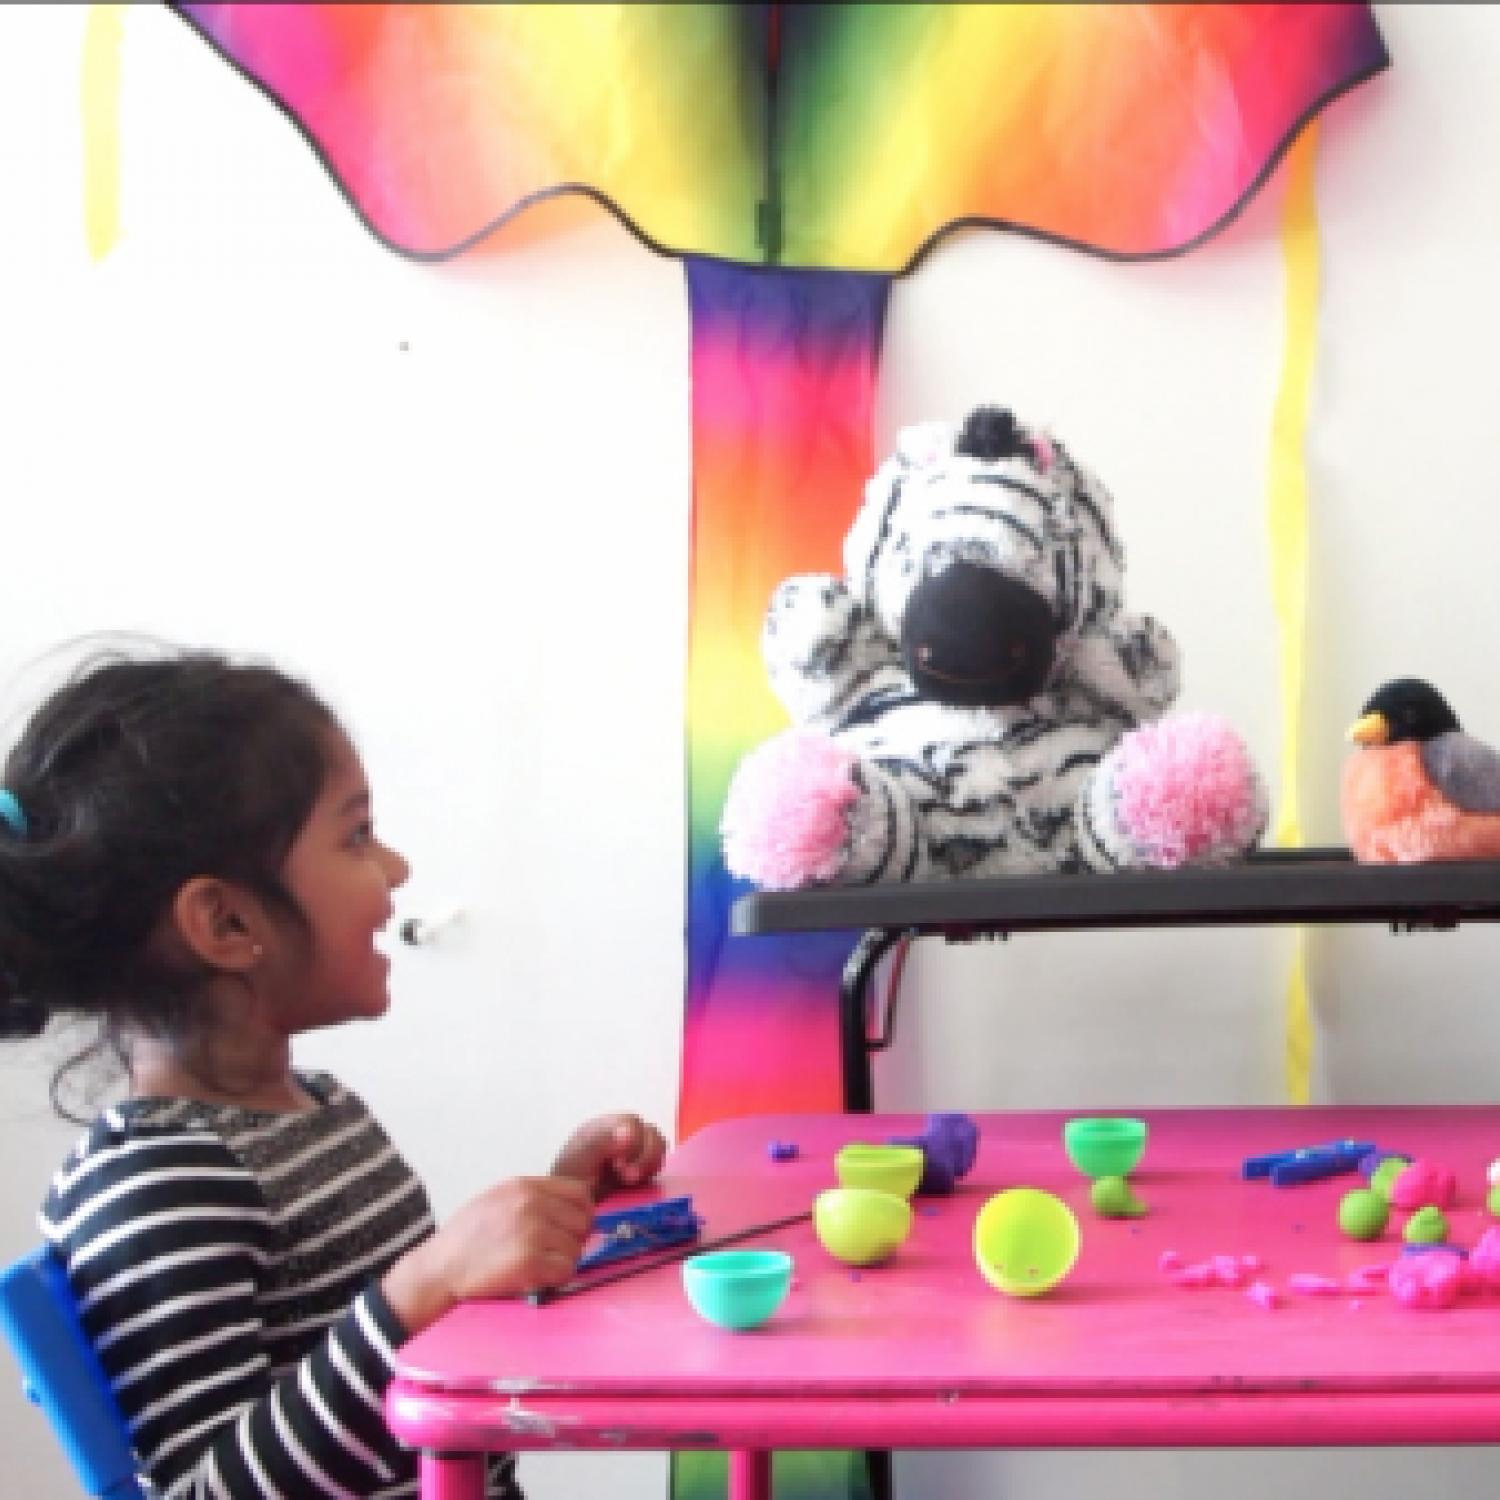 As preschoolers share their thoughts, the stuffed animal zebra asks them questions to deepen the story.